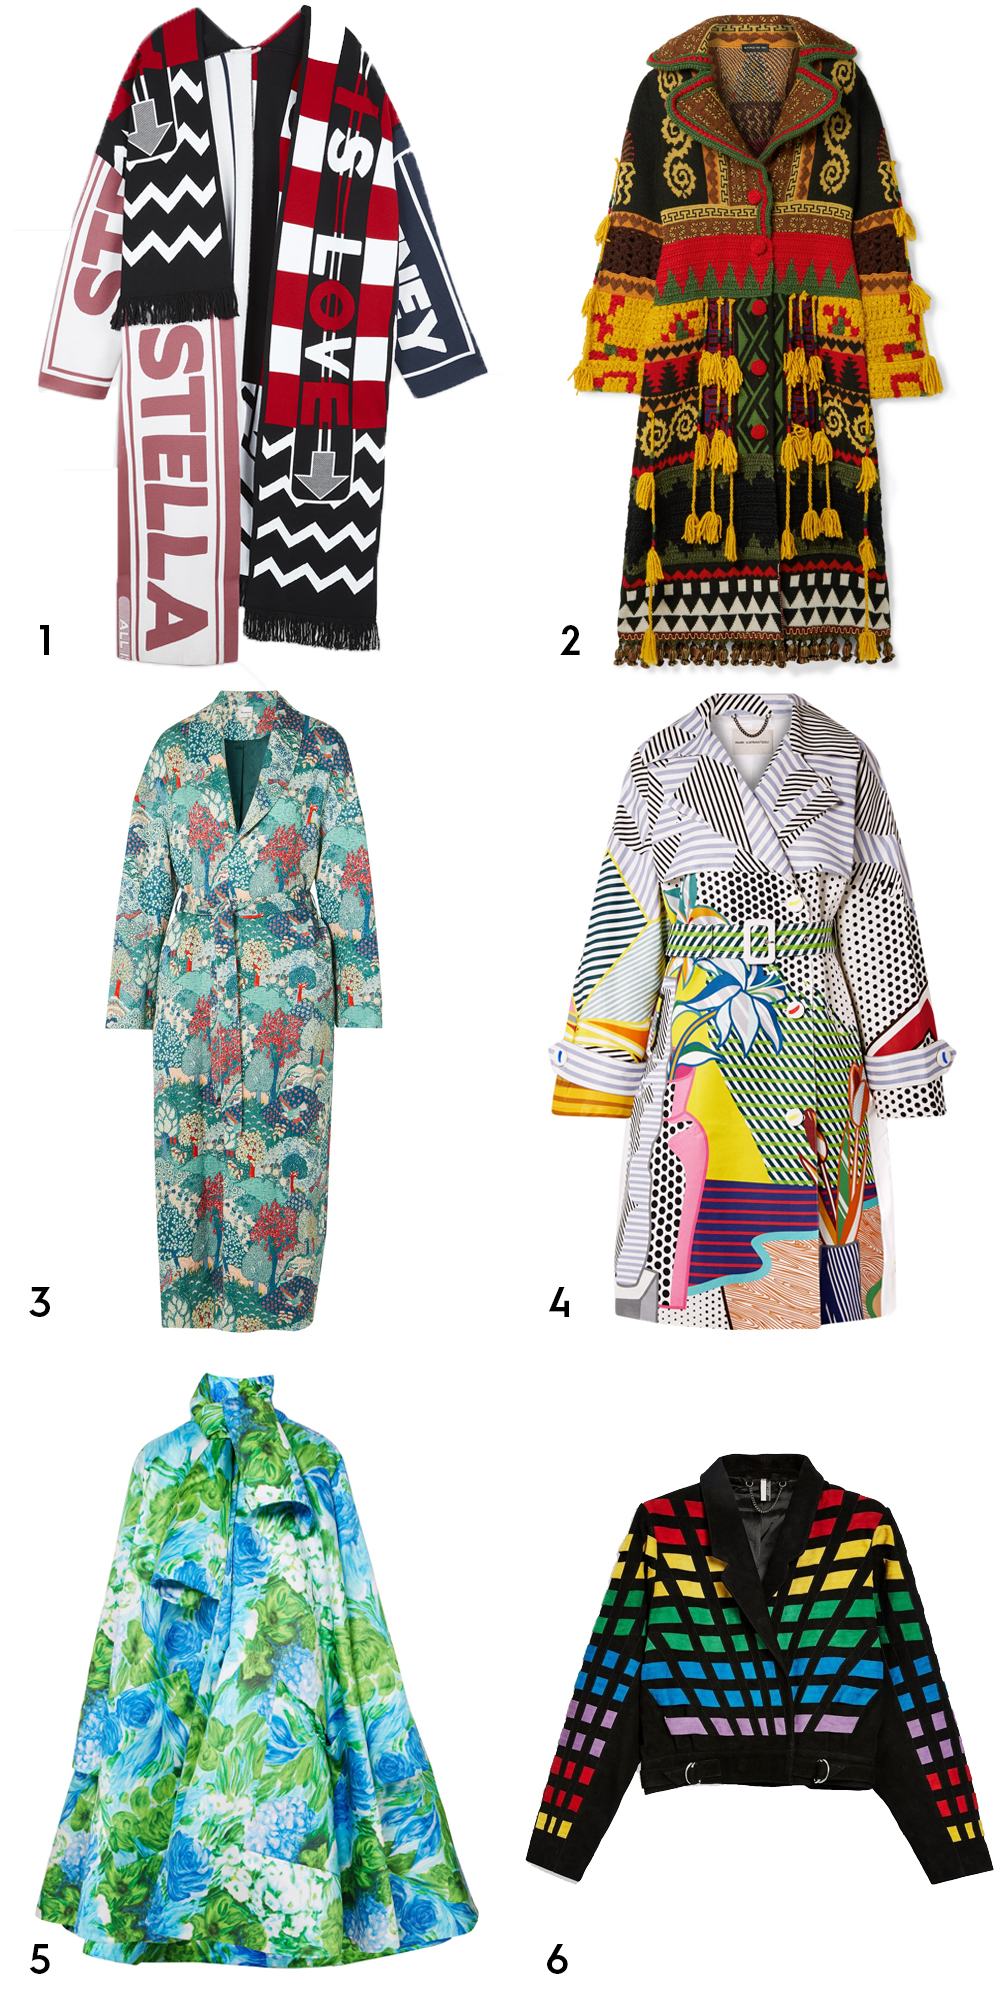 1 All Is Love patchwork coat, €1,795 at stellamccartney.com, 2 tasselled intarsia wool-blend coat by Etro, €4,480 at net-a-porter.com, 3 Margo quilted jacquard coat by Vilshenko, €959 at lyst.com, 4 printed cotton-blend gabardine trench coat by Mary Katrantzou, €1,995 at modesens.com, 5 oversized floral-print Duchesse-satin coat by Richard Malone, €2,990 at net-a-porter.com, 6 suede lattice jacket, €390 at topshop.com